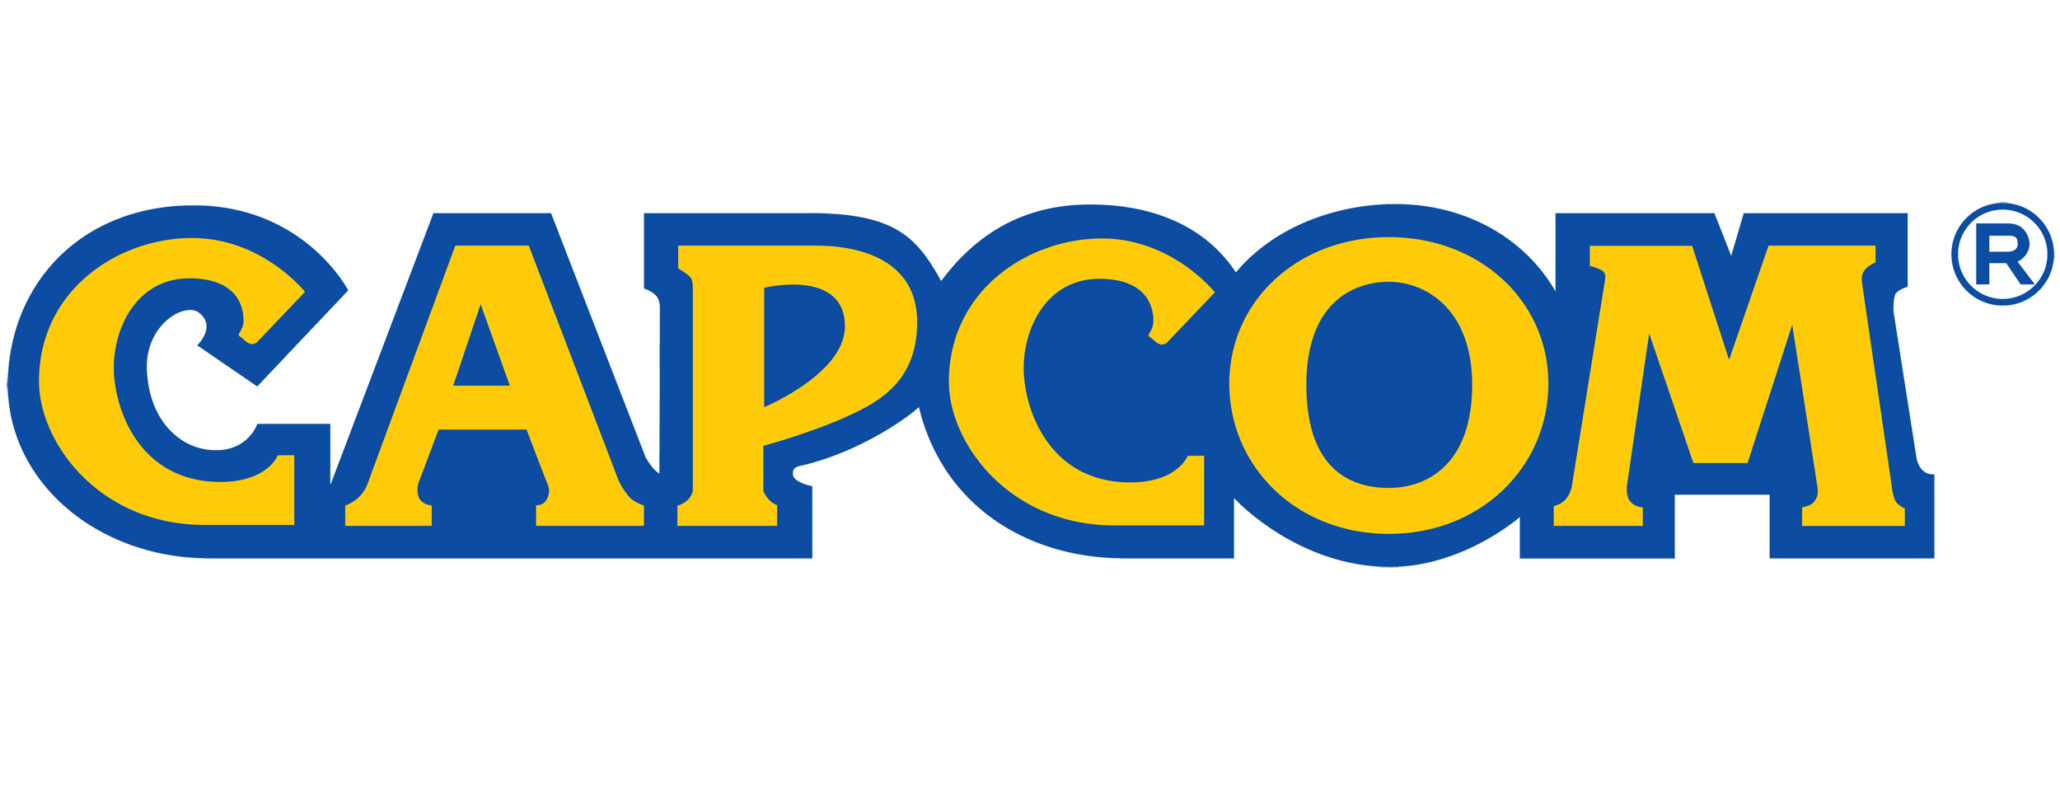 Image result for capcom